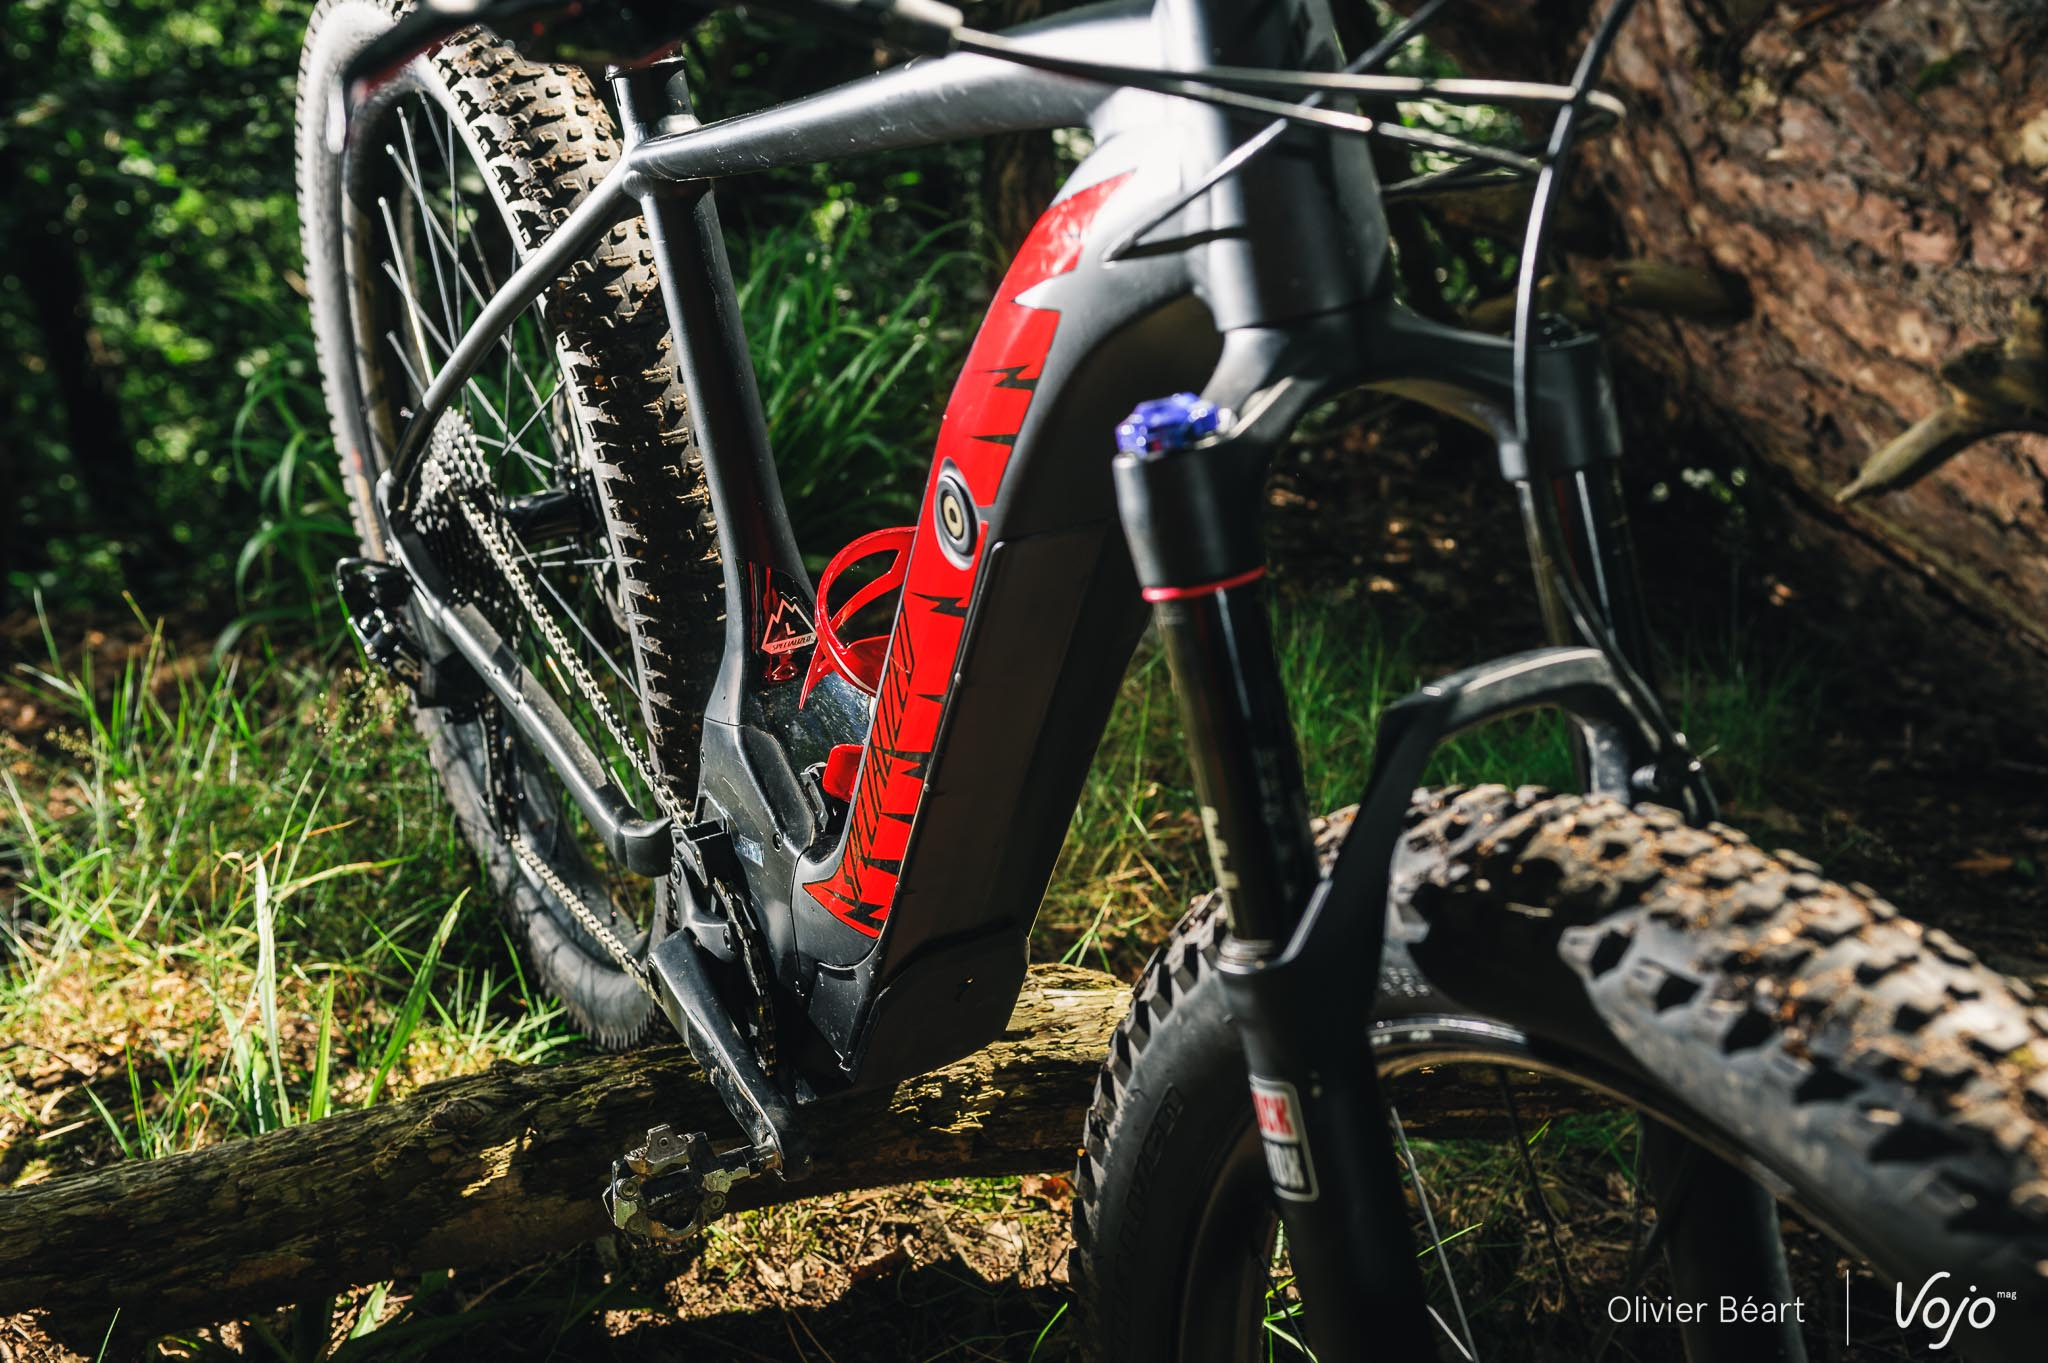 specialized_levo_ht_test_details_copyright_obeart_vojomag-23